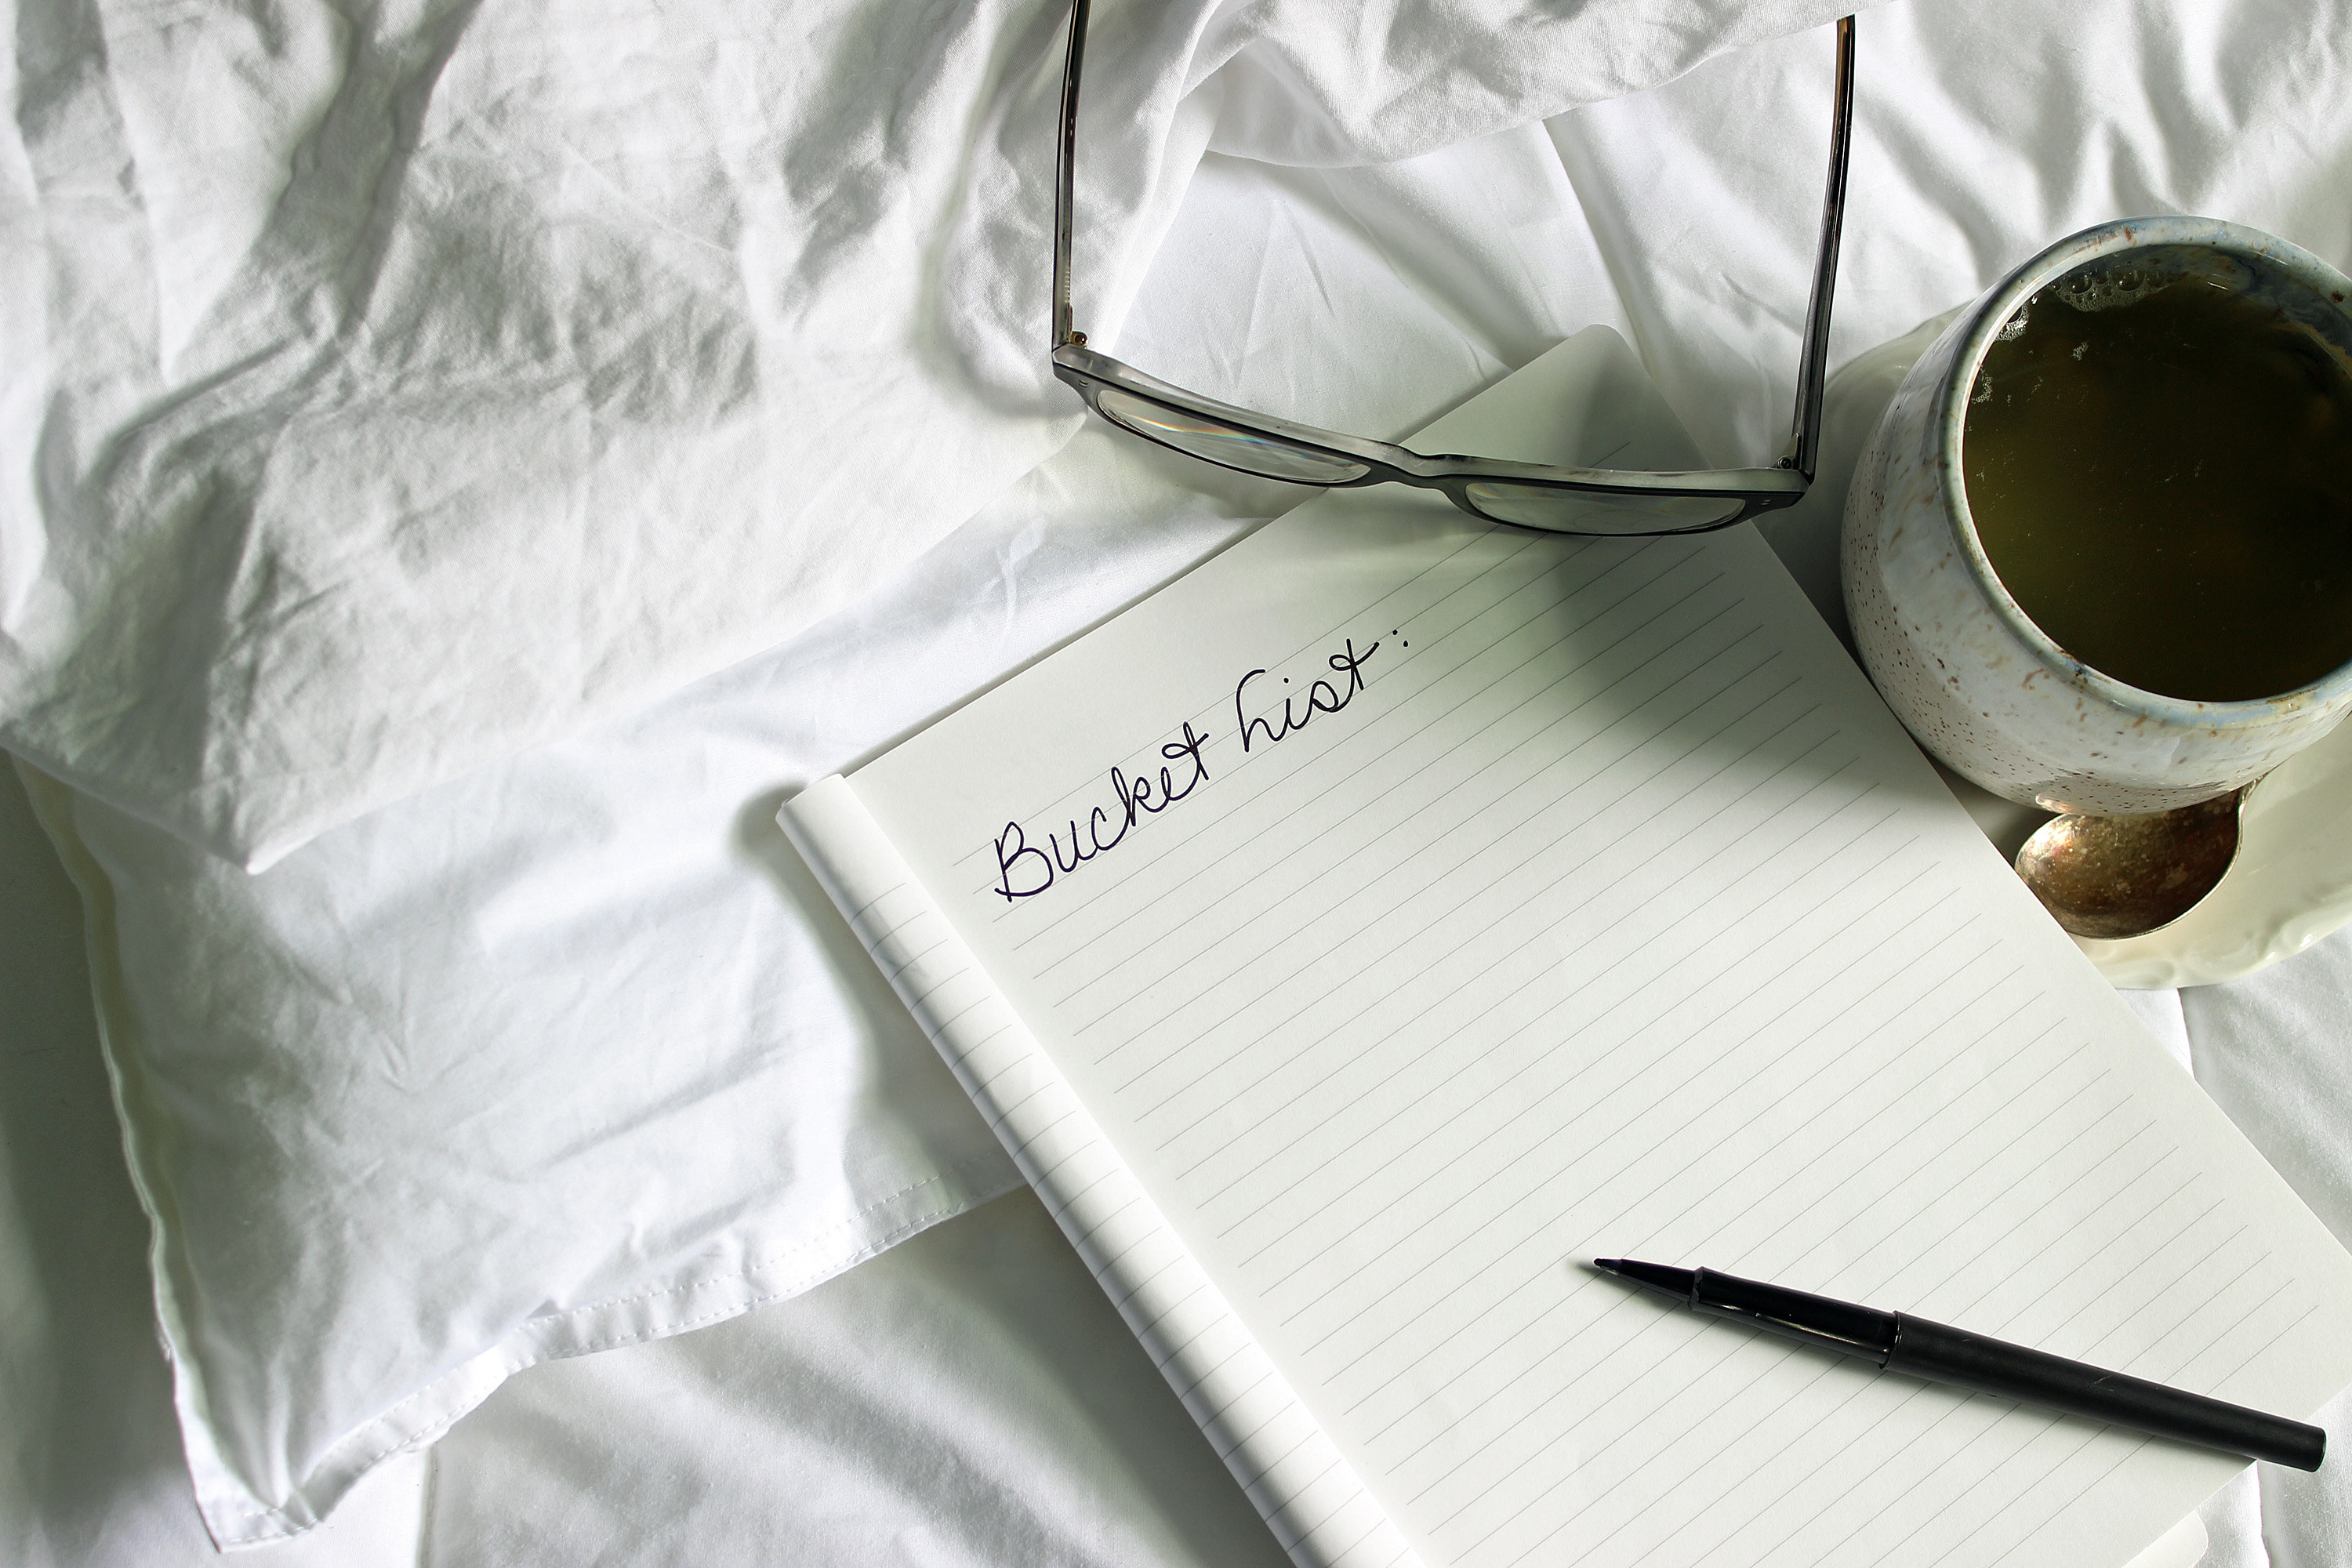 Photo of notepad on top of bed and pillow, with bucket-list written on one page with a cup of coffee to the right next to a pair of glasses and a pen on the lower corner